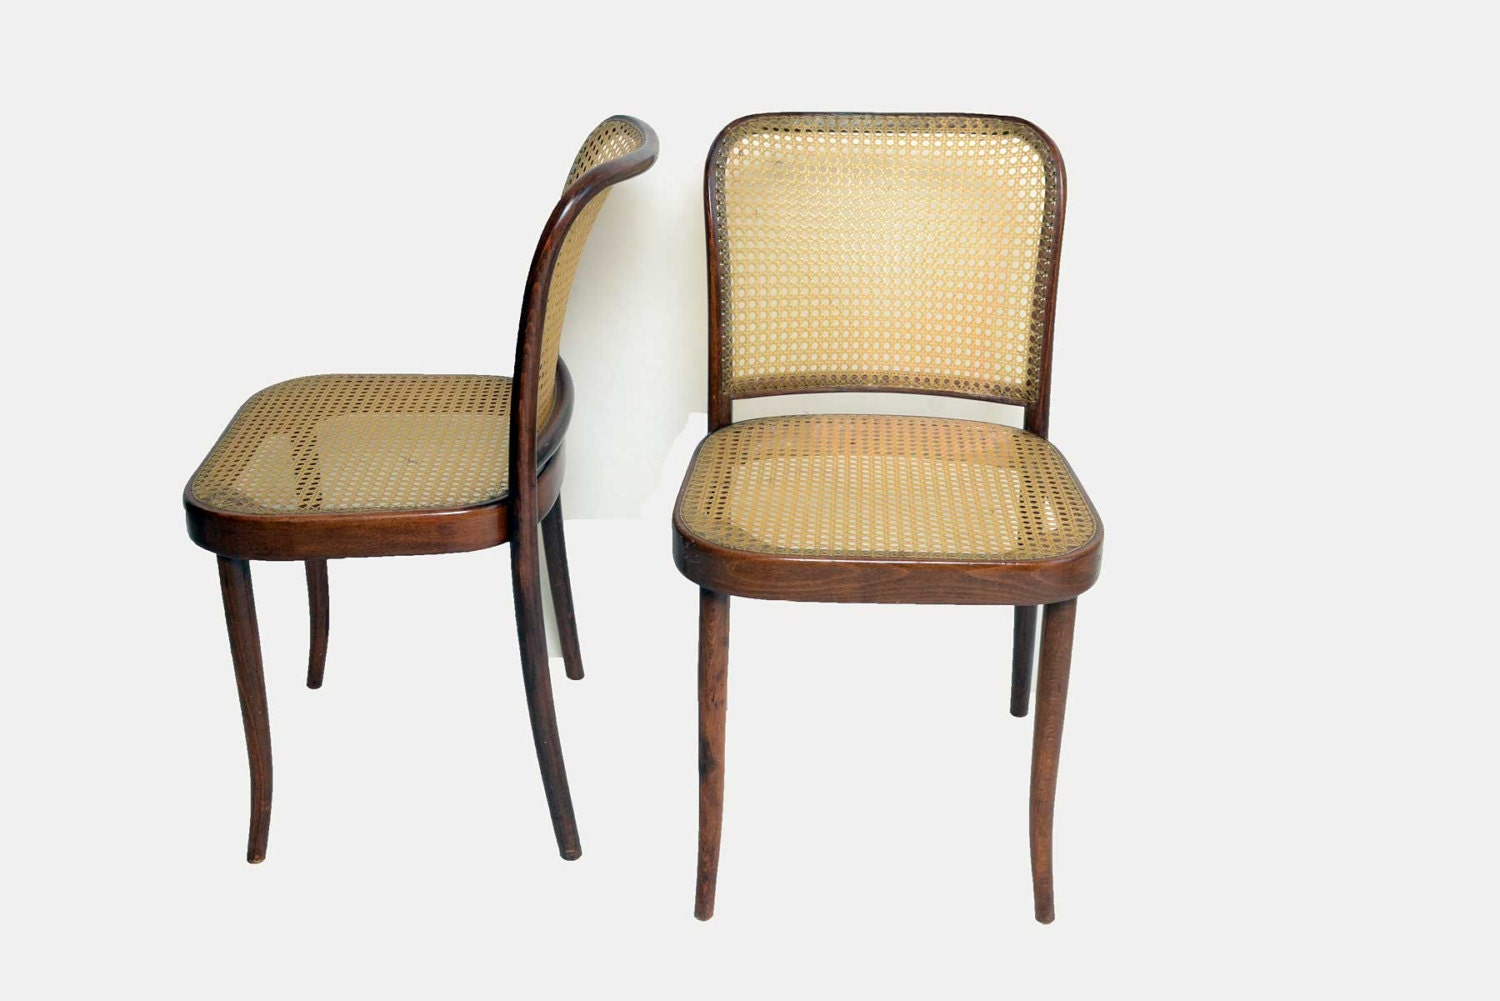 6 Thonet Bentwood Cane Dining Chairs 1950 1960 Mid Century